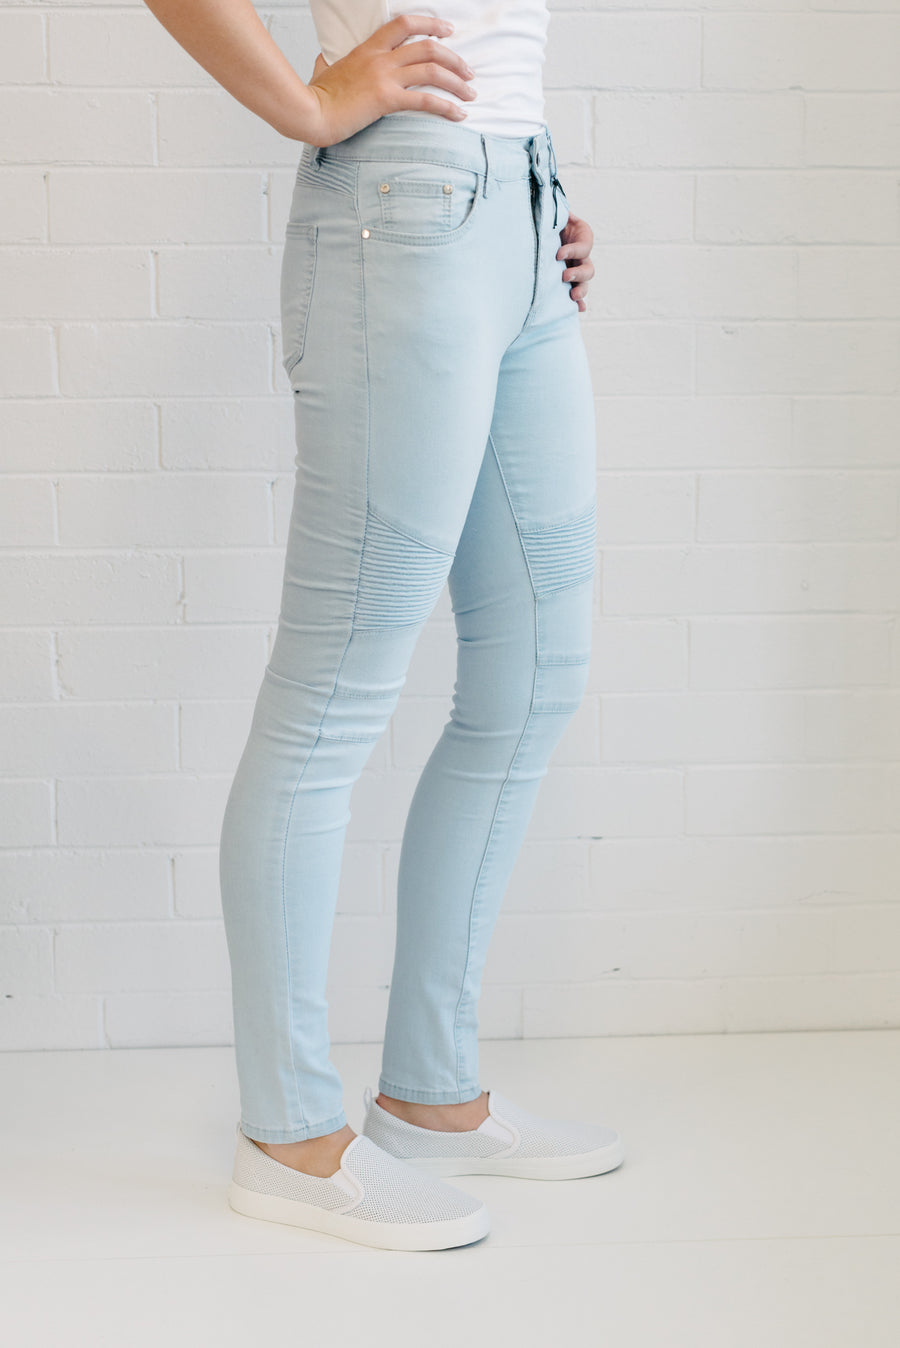 Ribbed Knee Jeans Women Light Wash | Lyn Rose Boutique